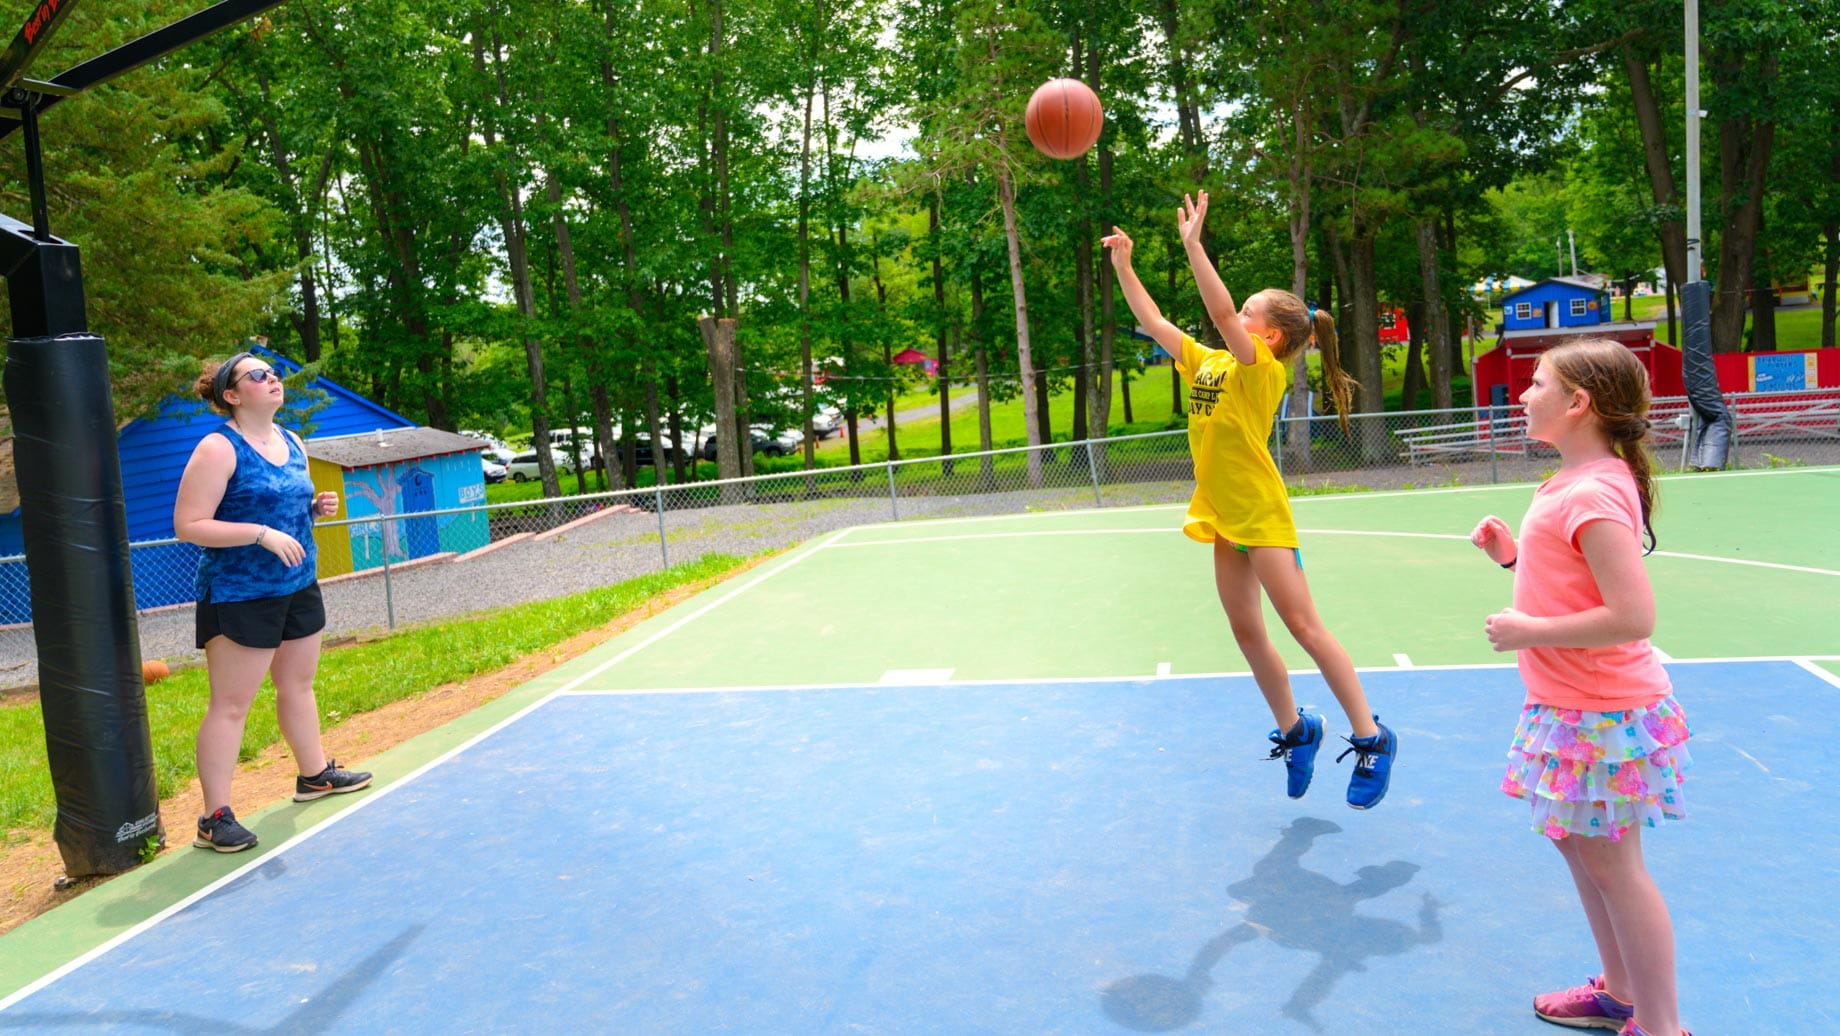 Girls playing basketball